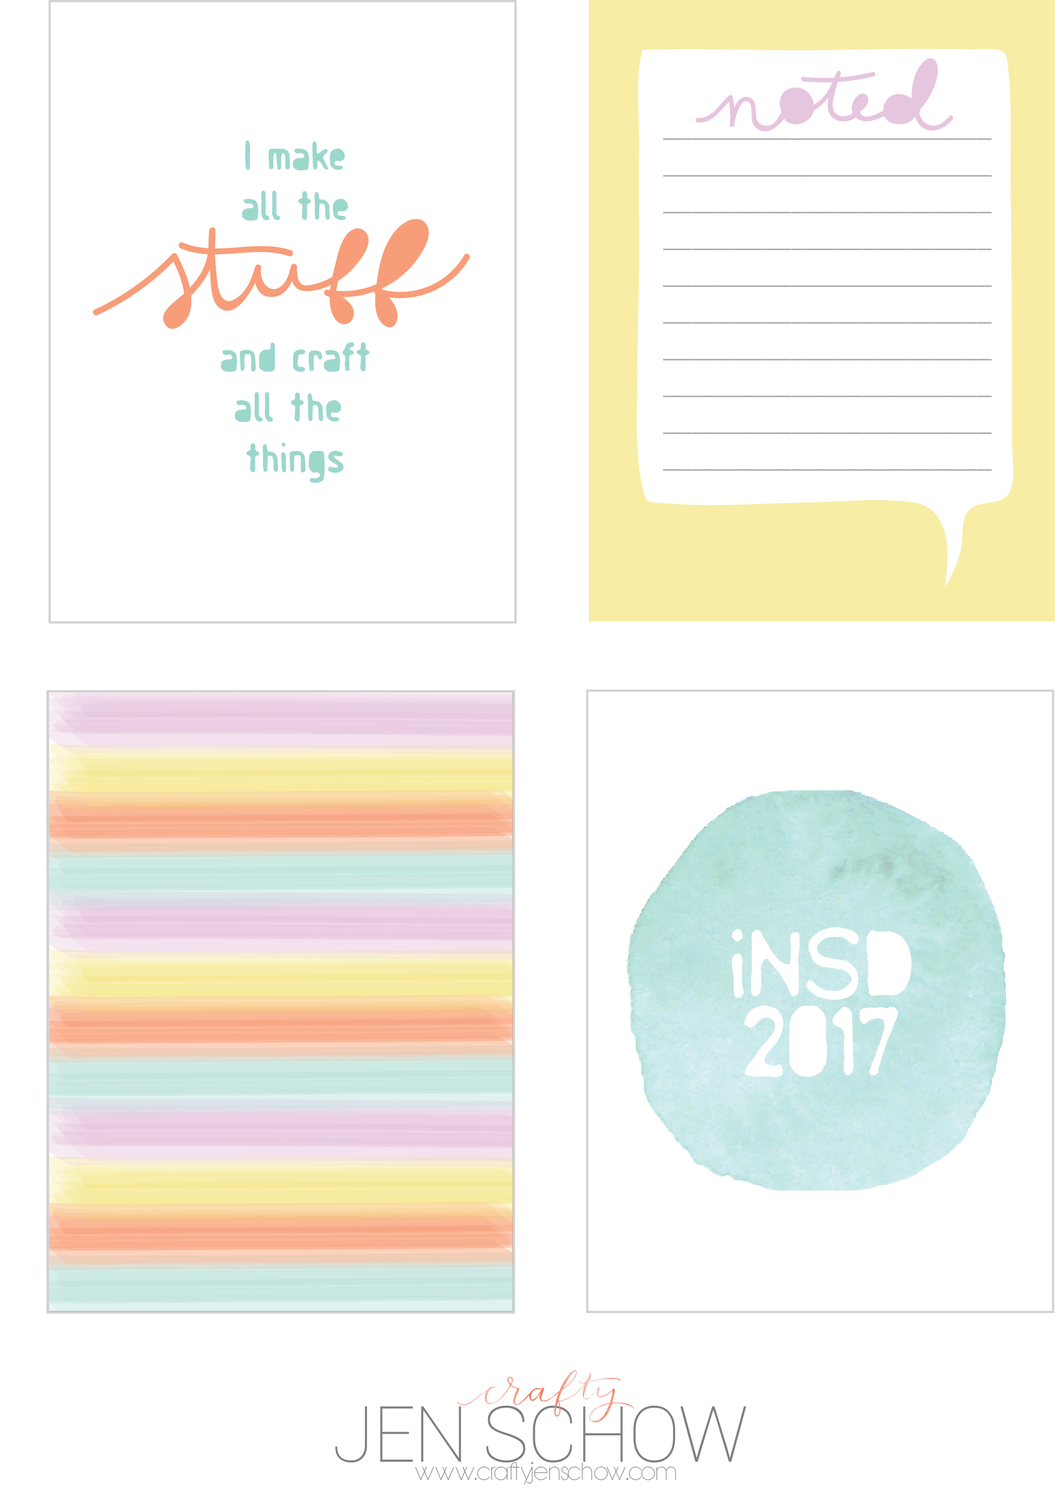 iNSD 2017 *Free* Printable Download